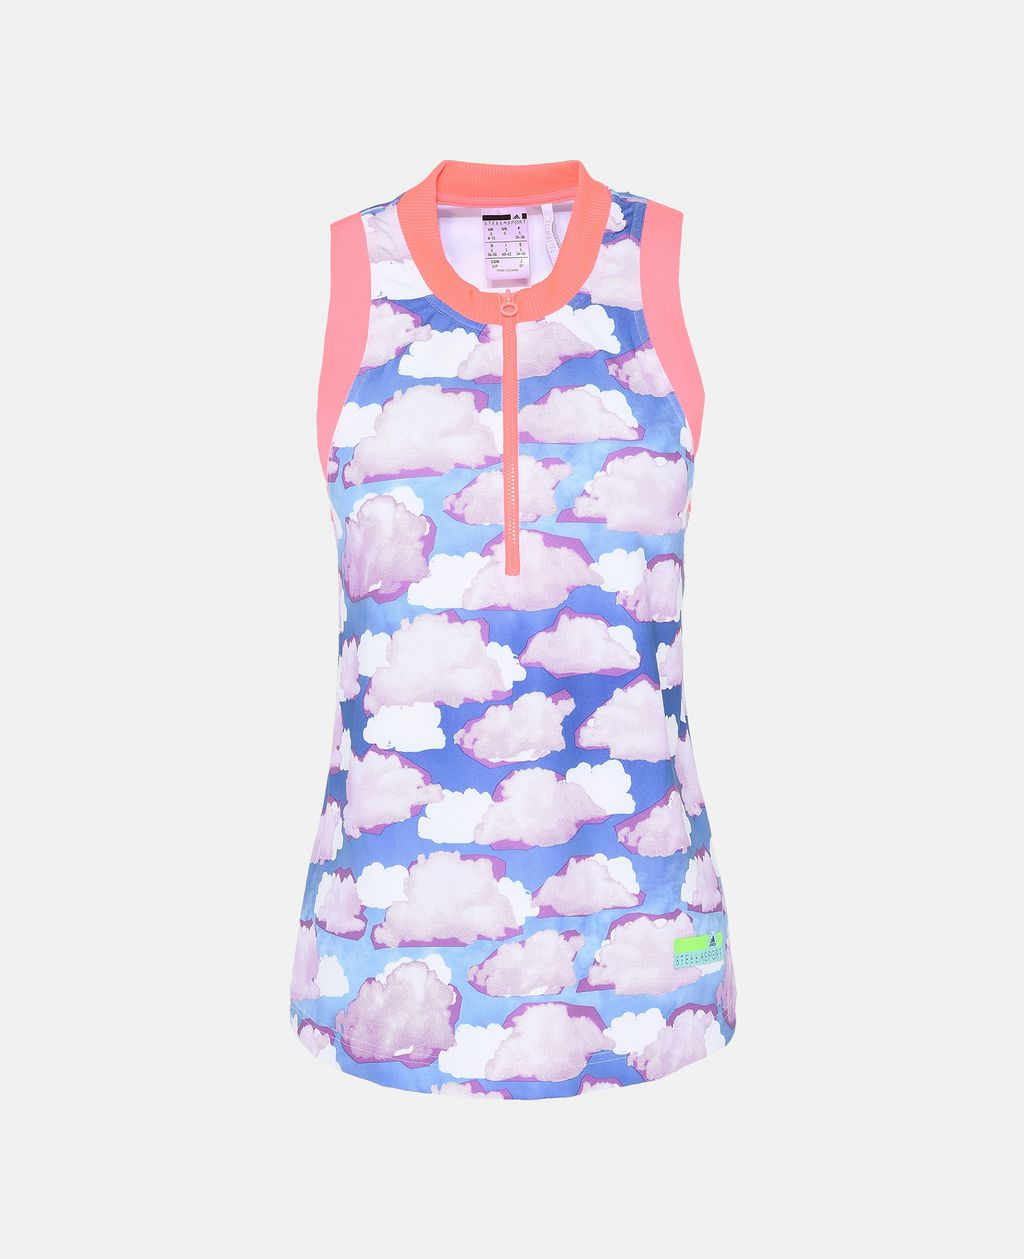 Cloud Print Zipper Top - ADIDAS by STELLA McCARTNEY